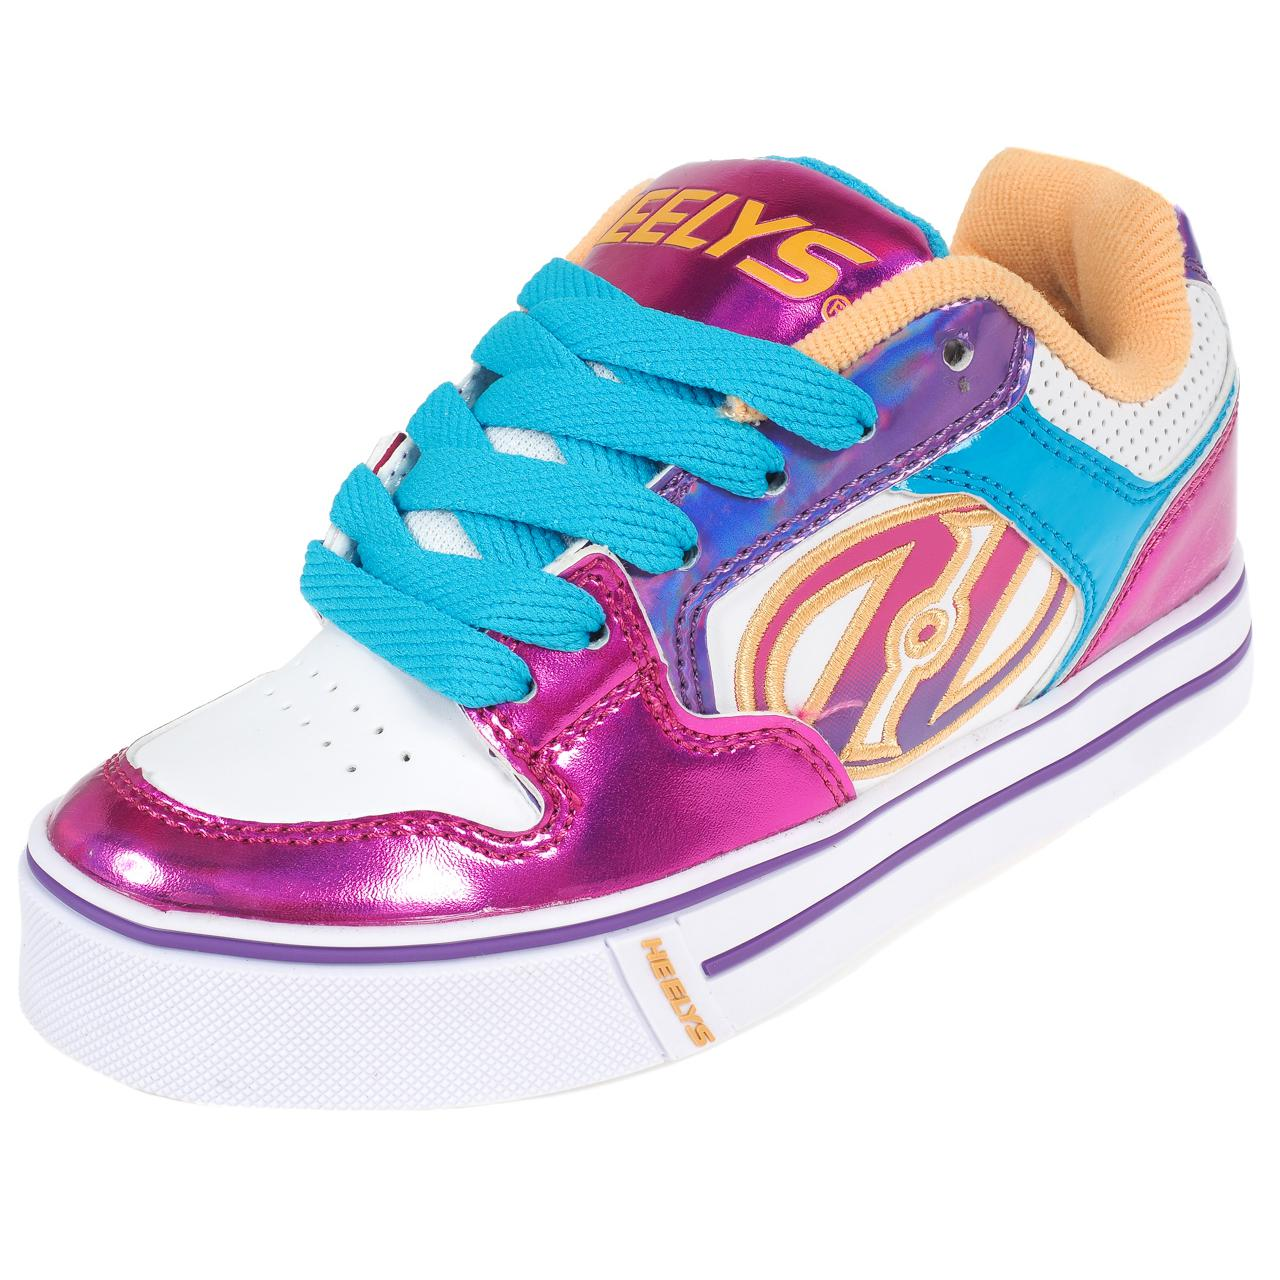 Shoes-to-Casters-Heelys-Motion-More-Fuchsia-White-Pink-11296-New